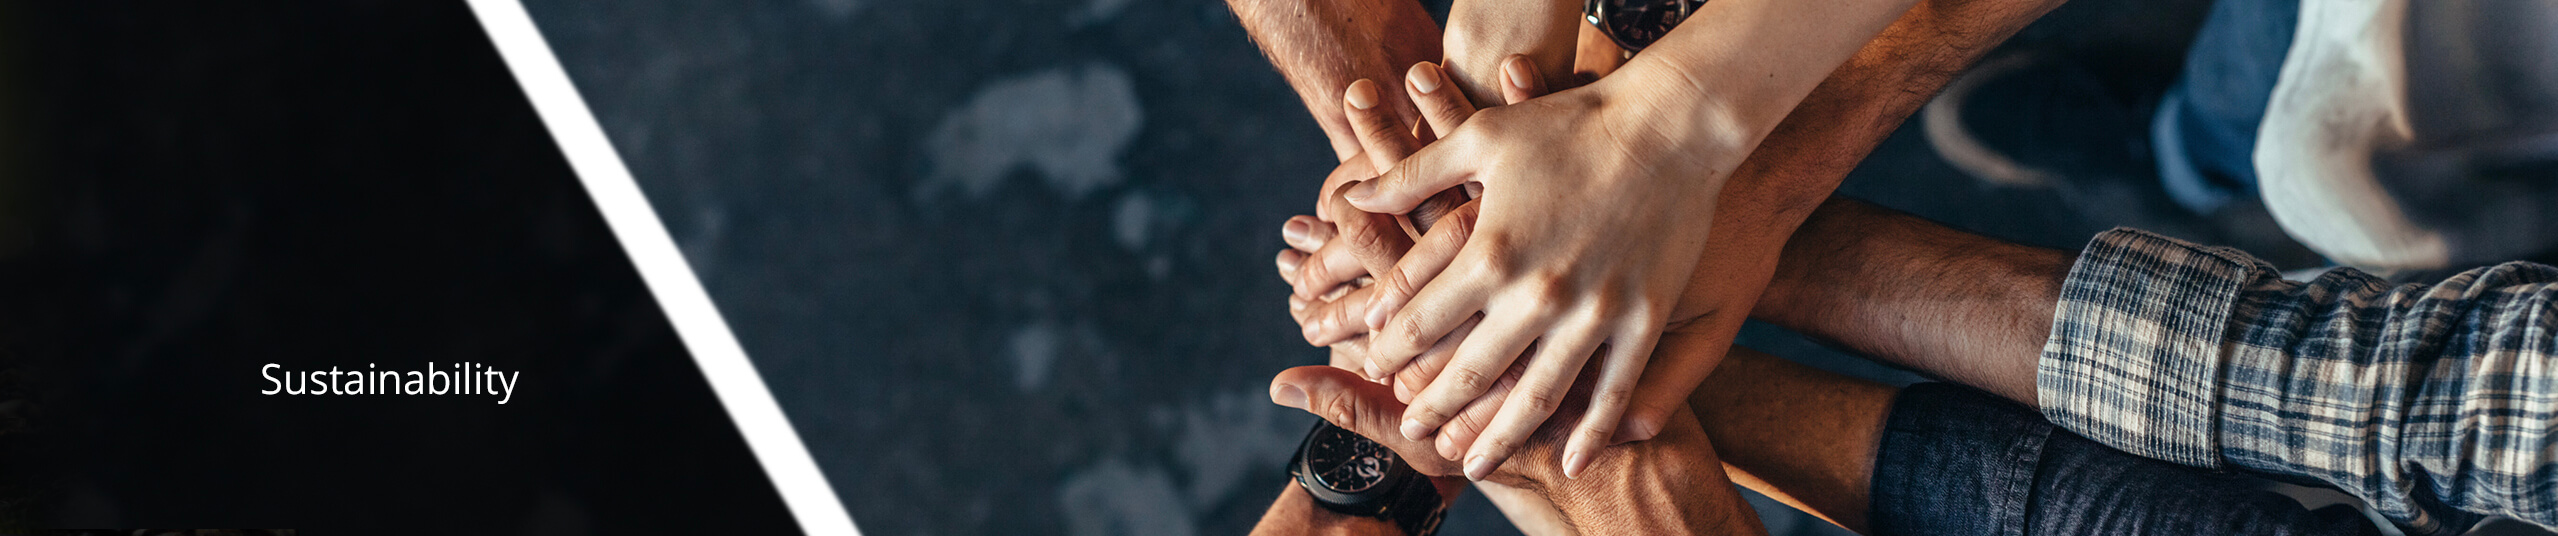 Professional group stacking hands, showing teamwork